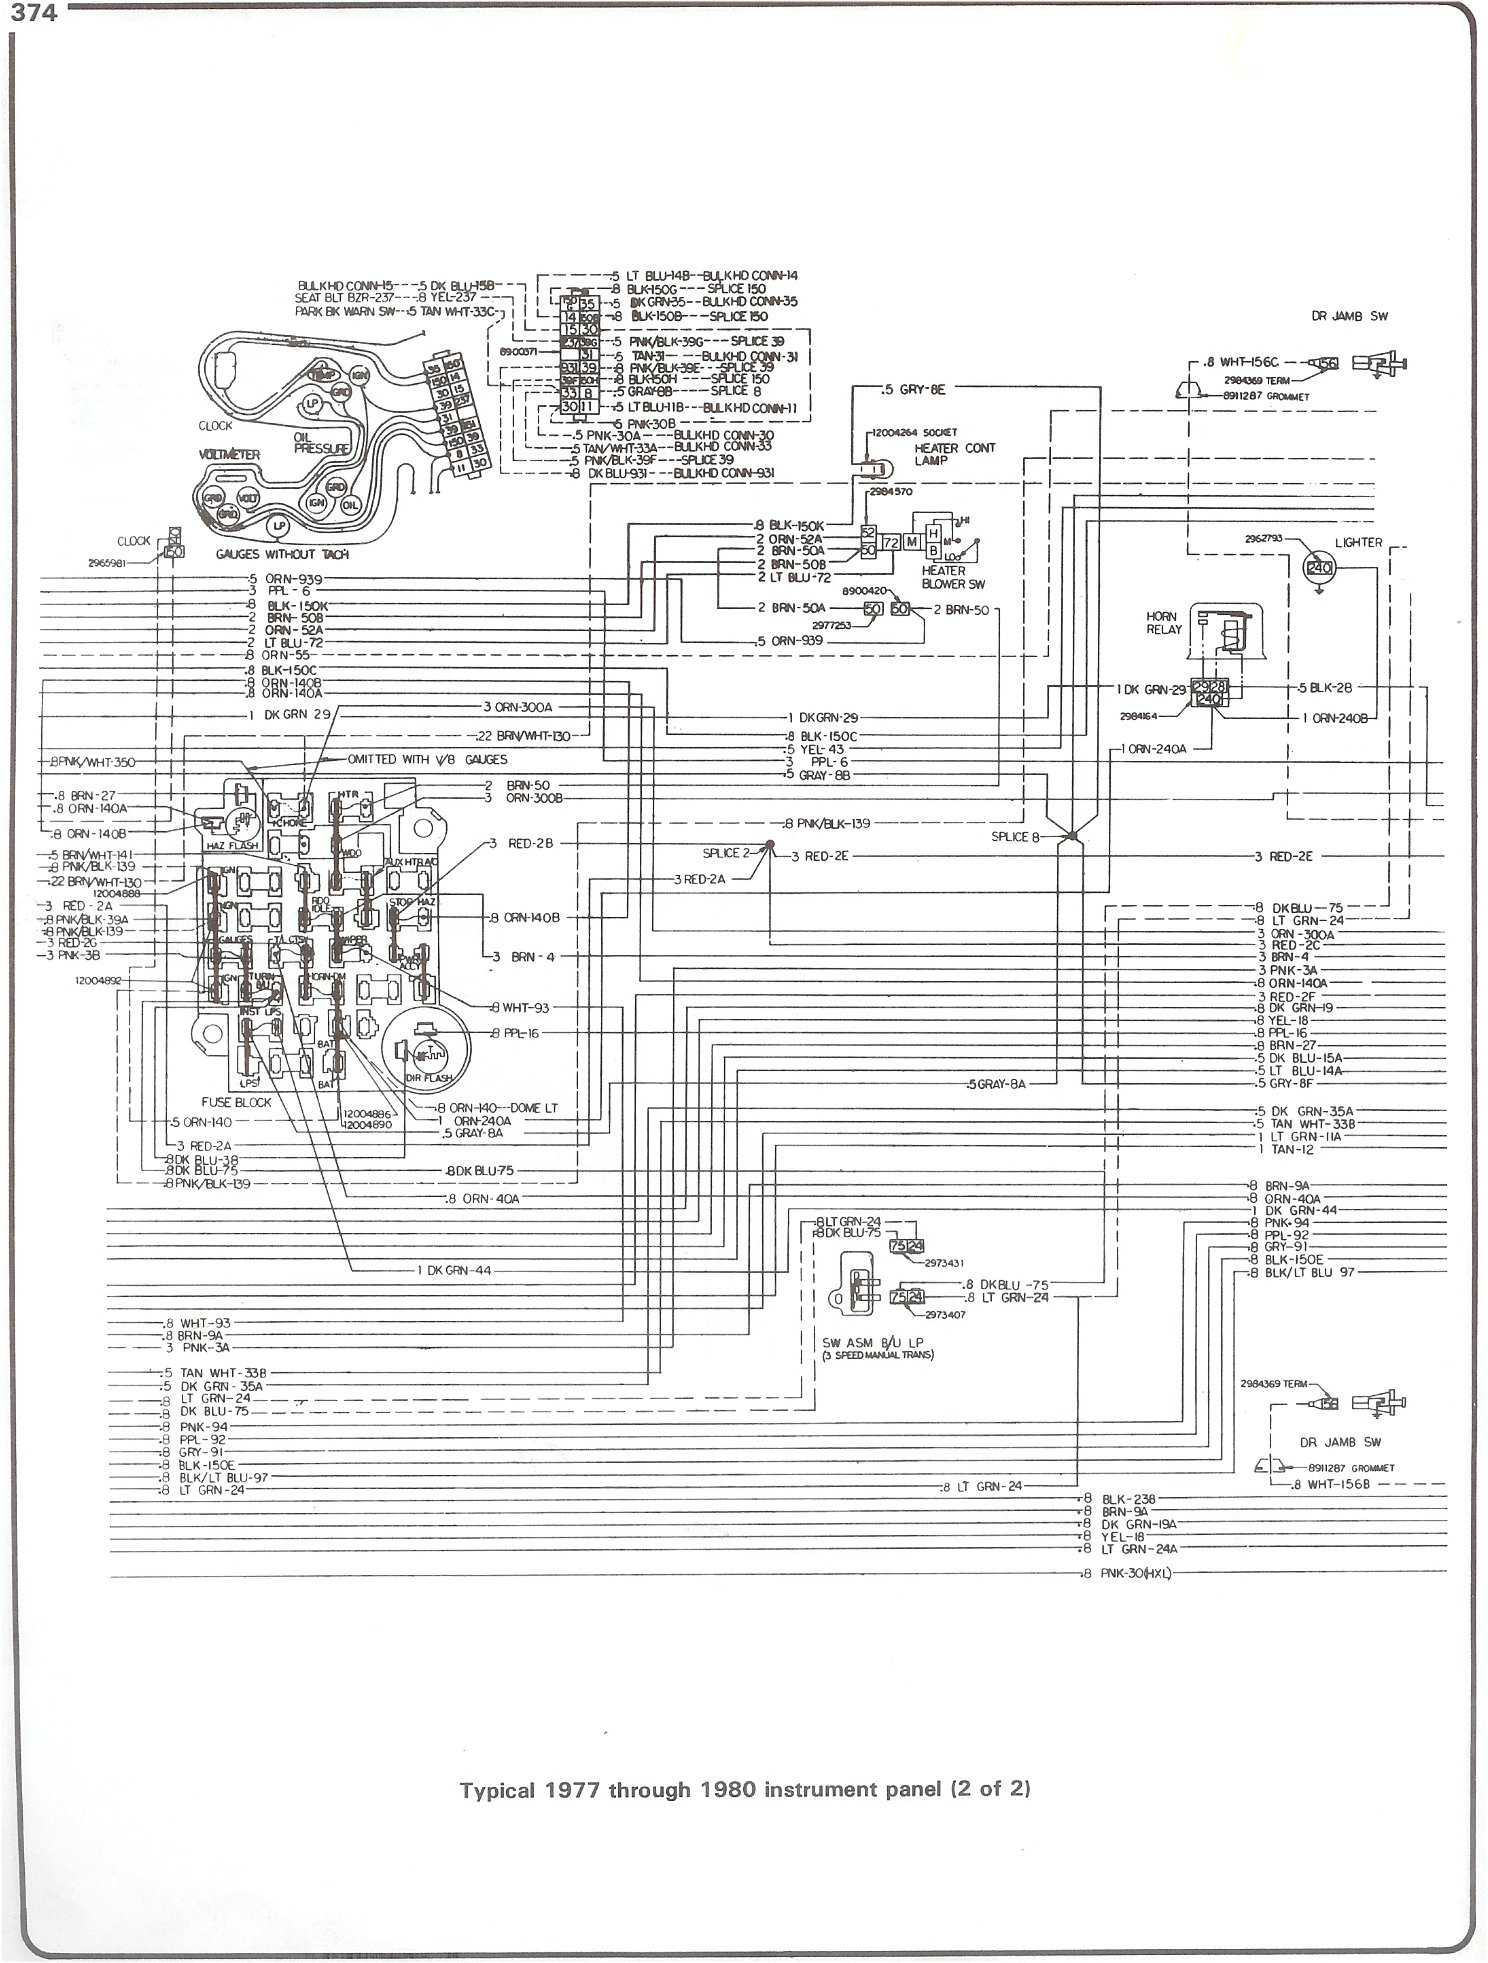 77 80_instrument_pg2 complete 73 87 wiring diagrams 2008 Chevy Silverado Wiring Diagram at bayanpartner.co